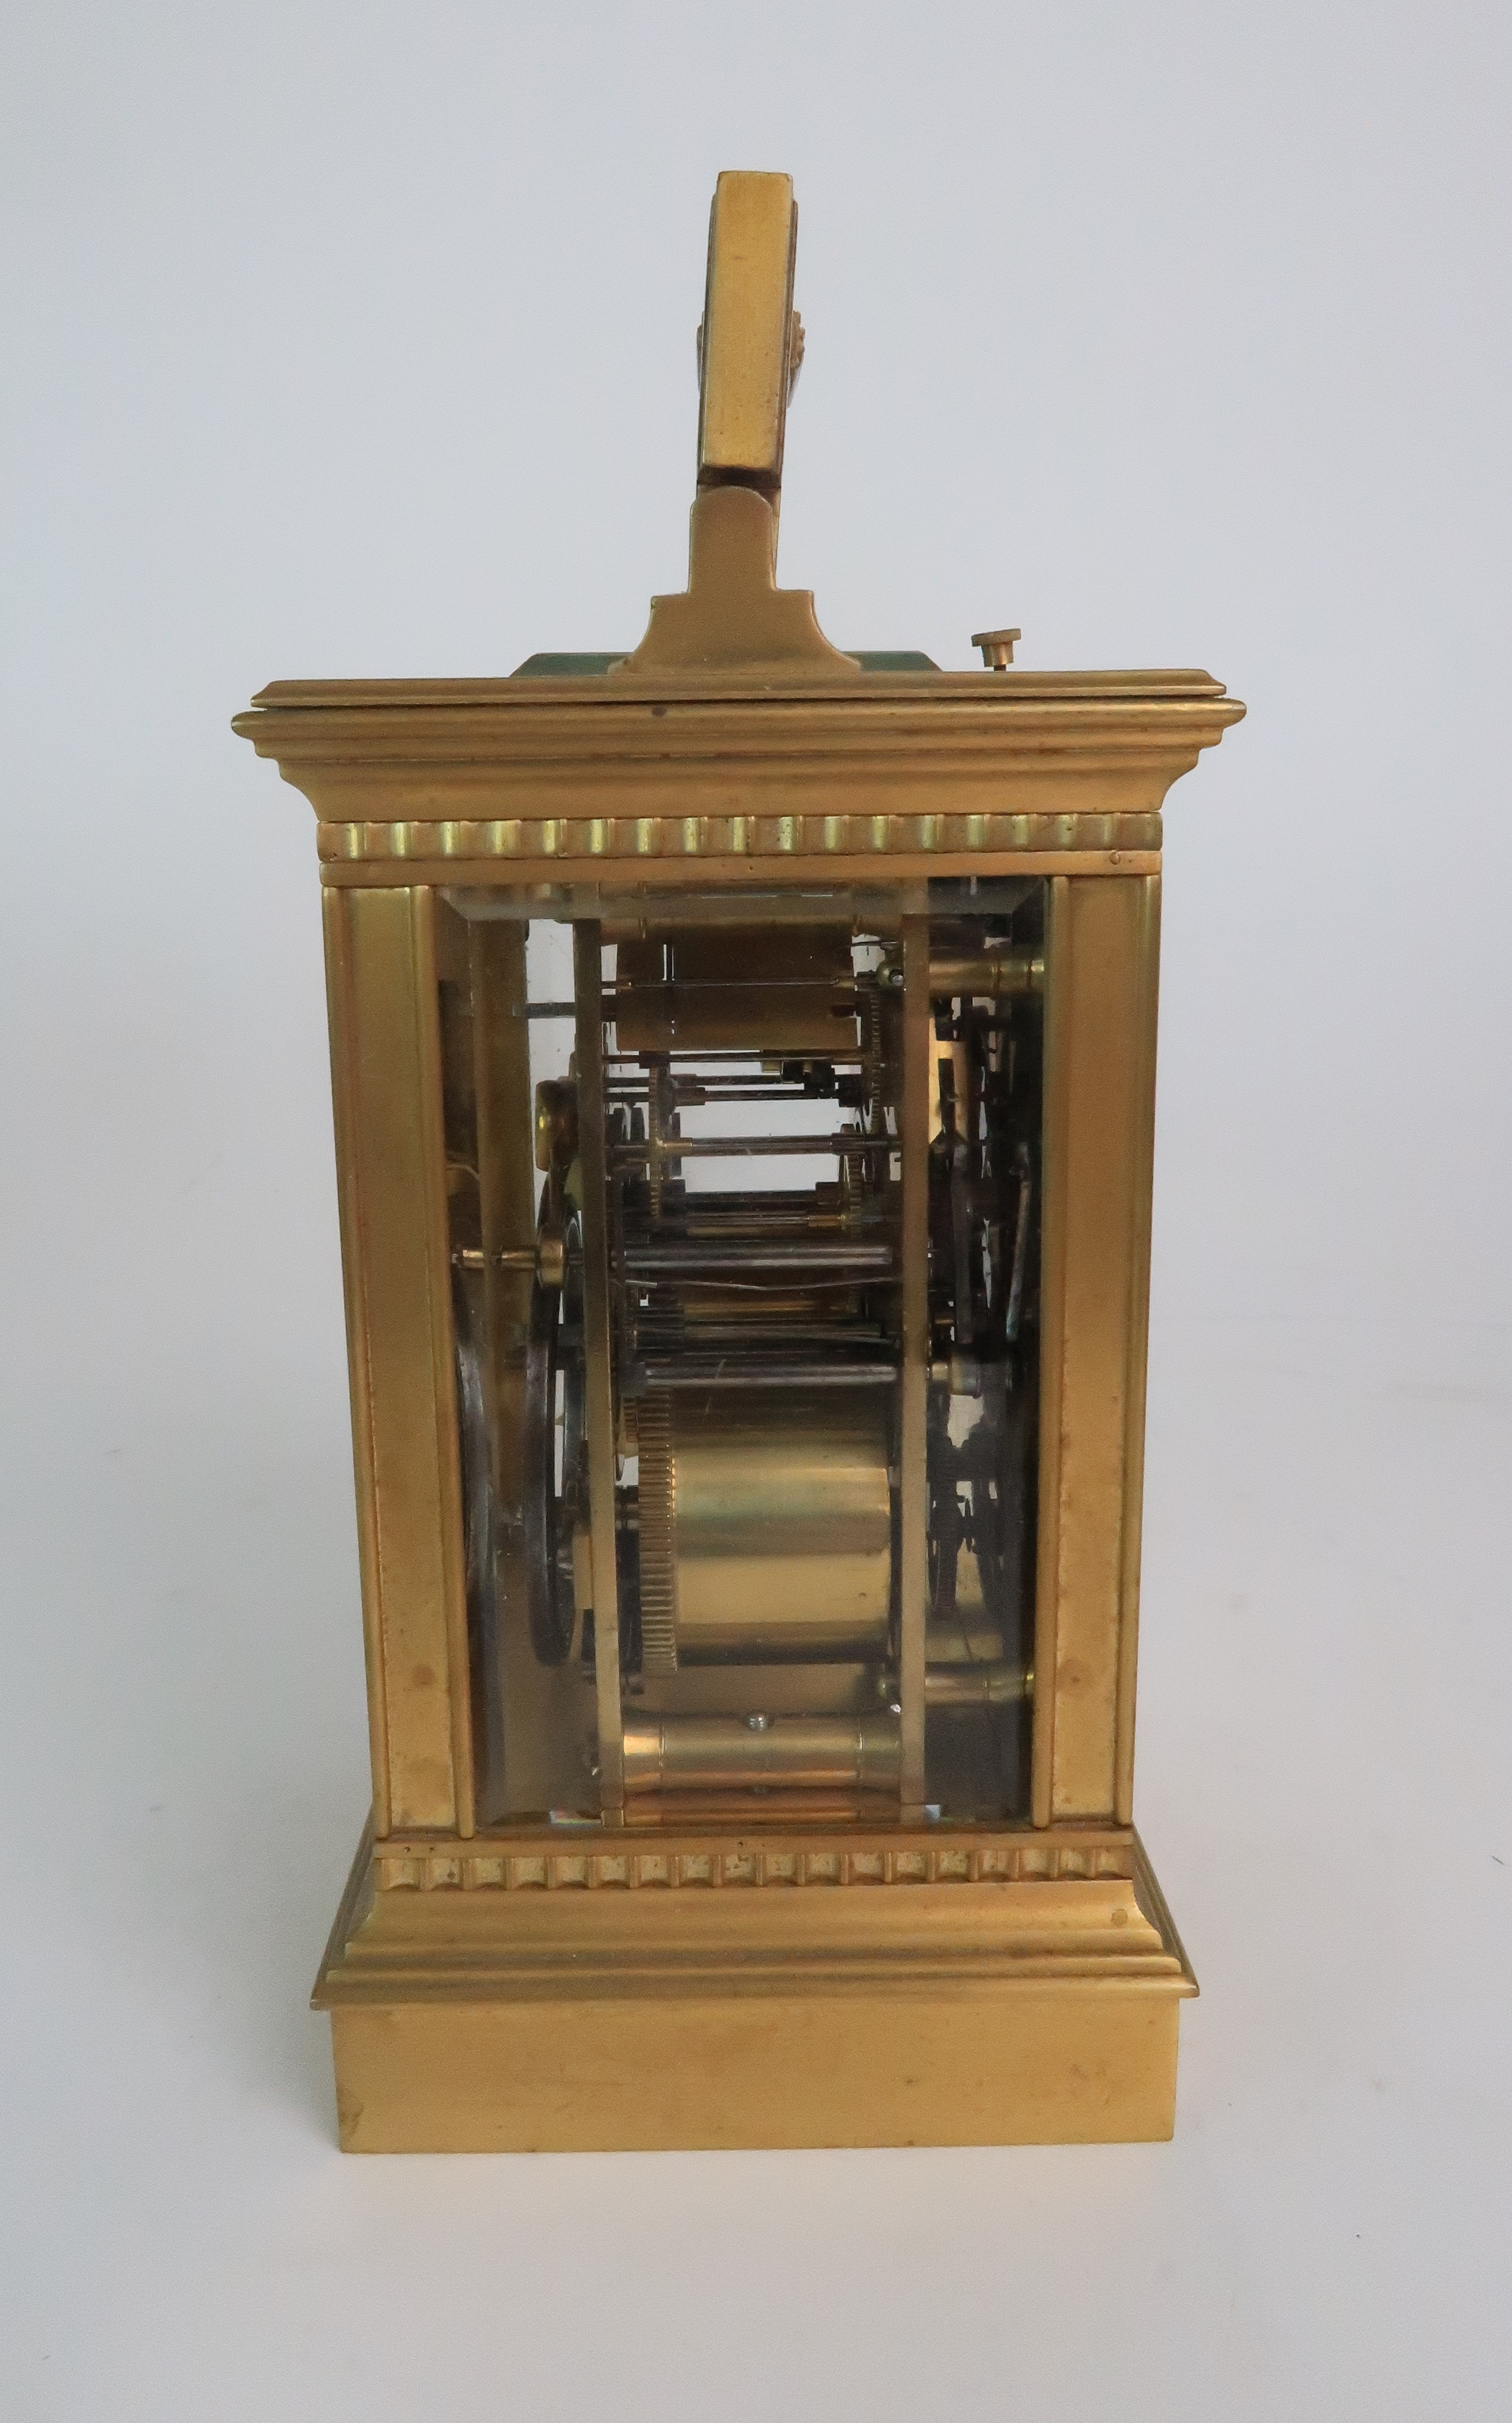 A FRENCH BRASS AND GLASS REPEATER CARRIAGE CLOCK the enamel dial with Roman numerals, with - Image 5 of 8